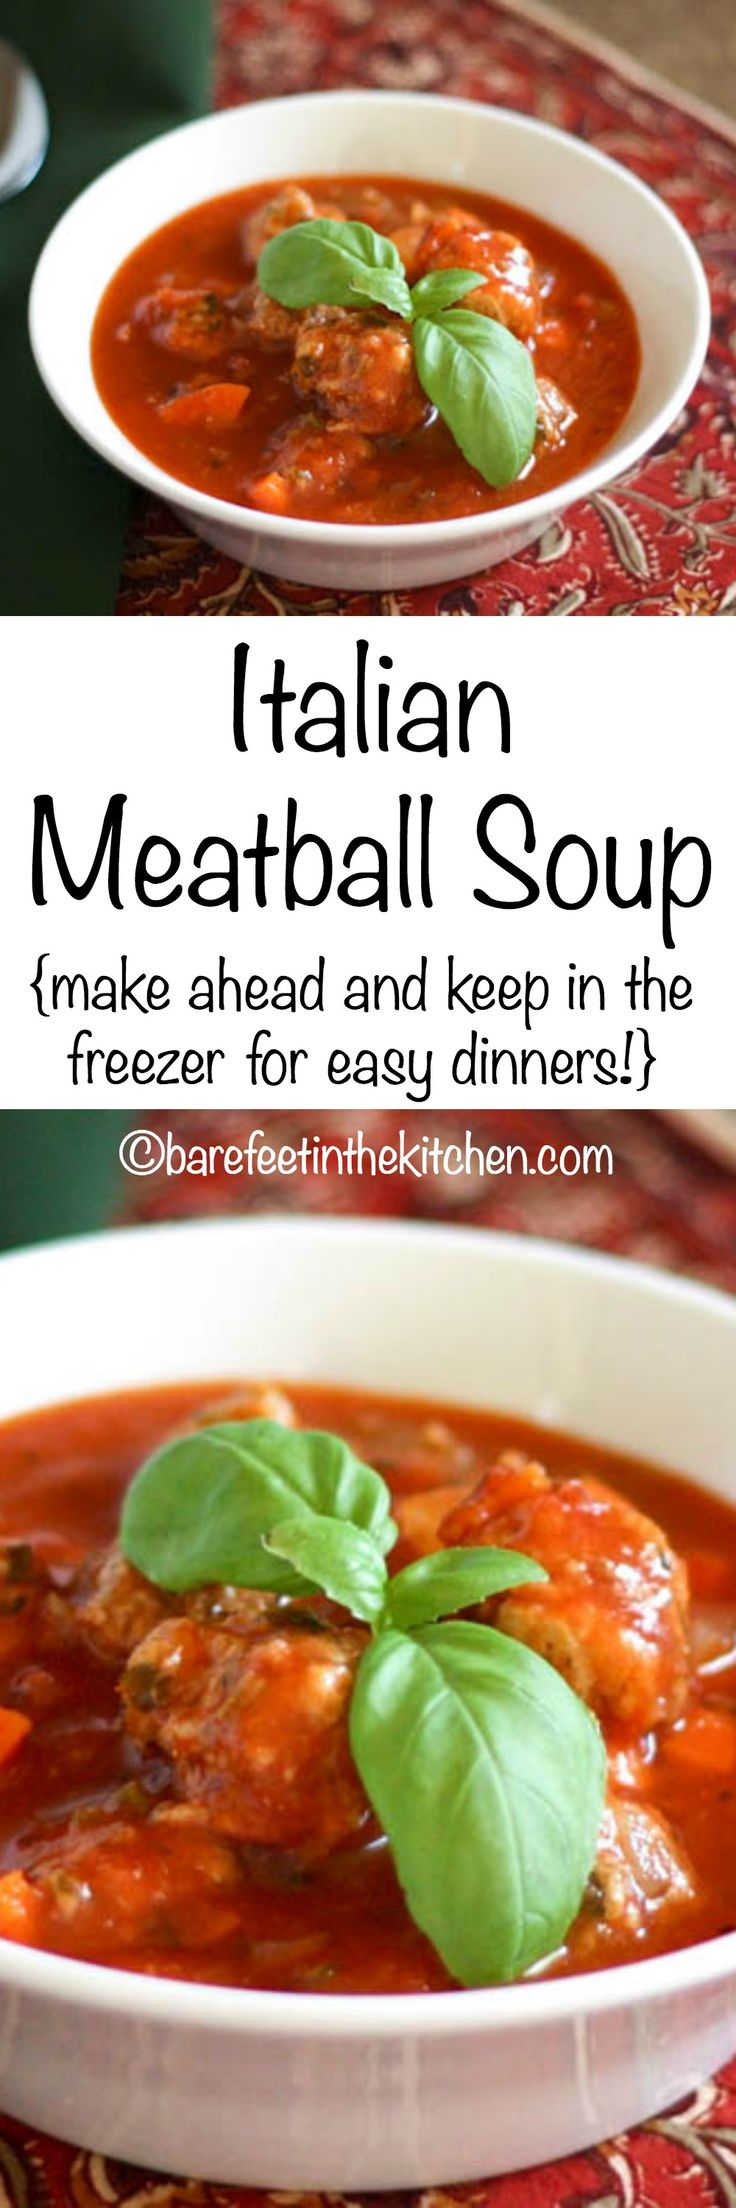 Italian Herb Meatball Soup is perfect for lunch or dinner. Make a double batch now and stash some away in the freezer! Get the recipe at barefeetinthekitchen.com